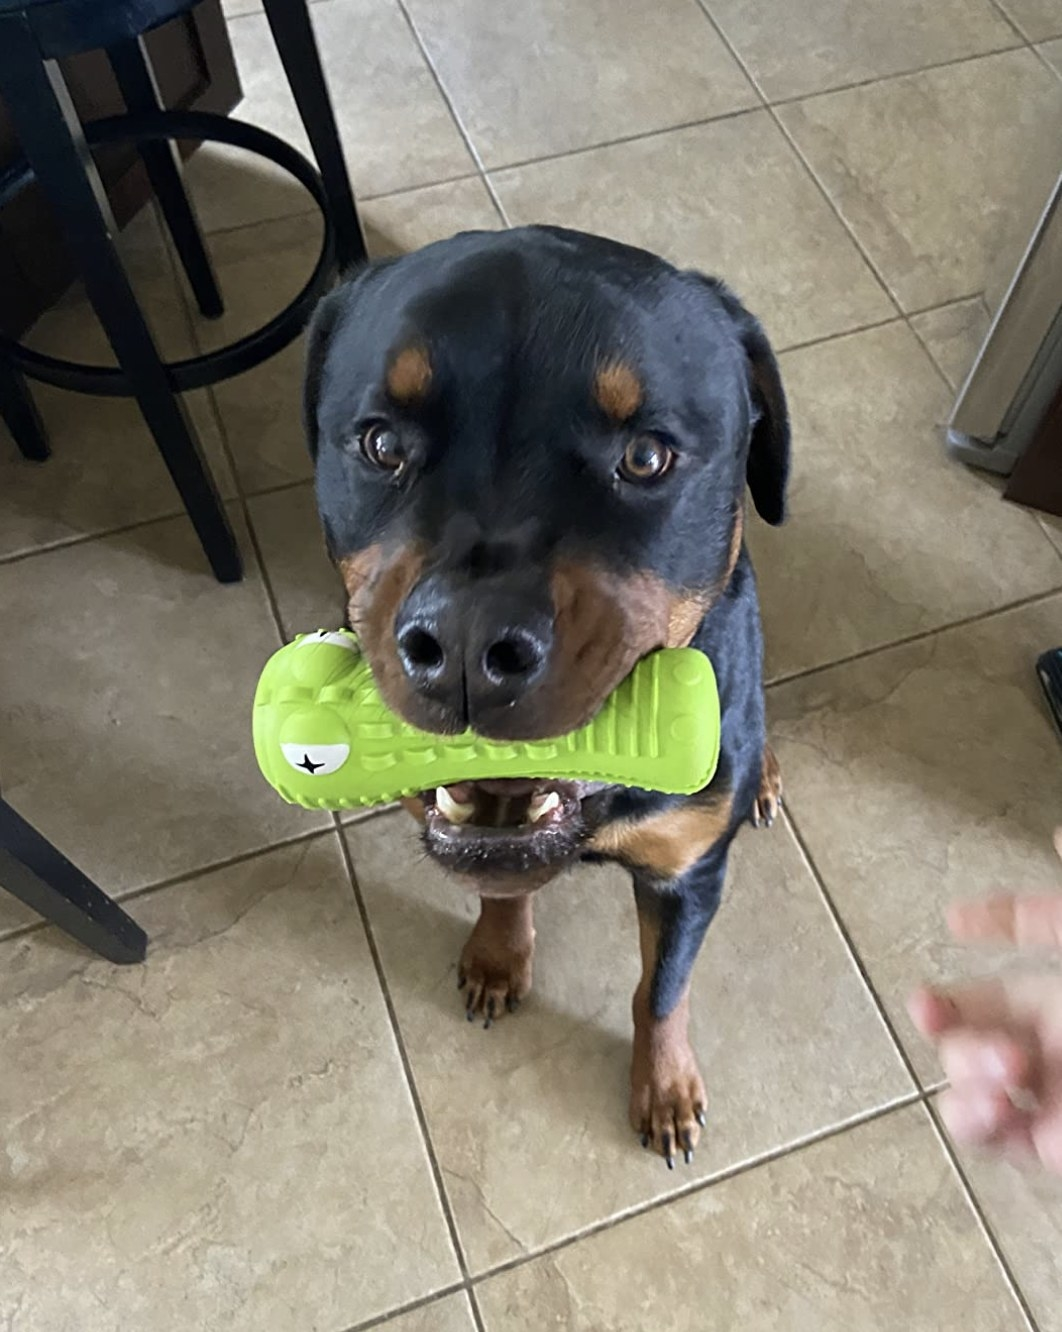 a dog with a green chew toy in its mouth